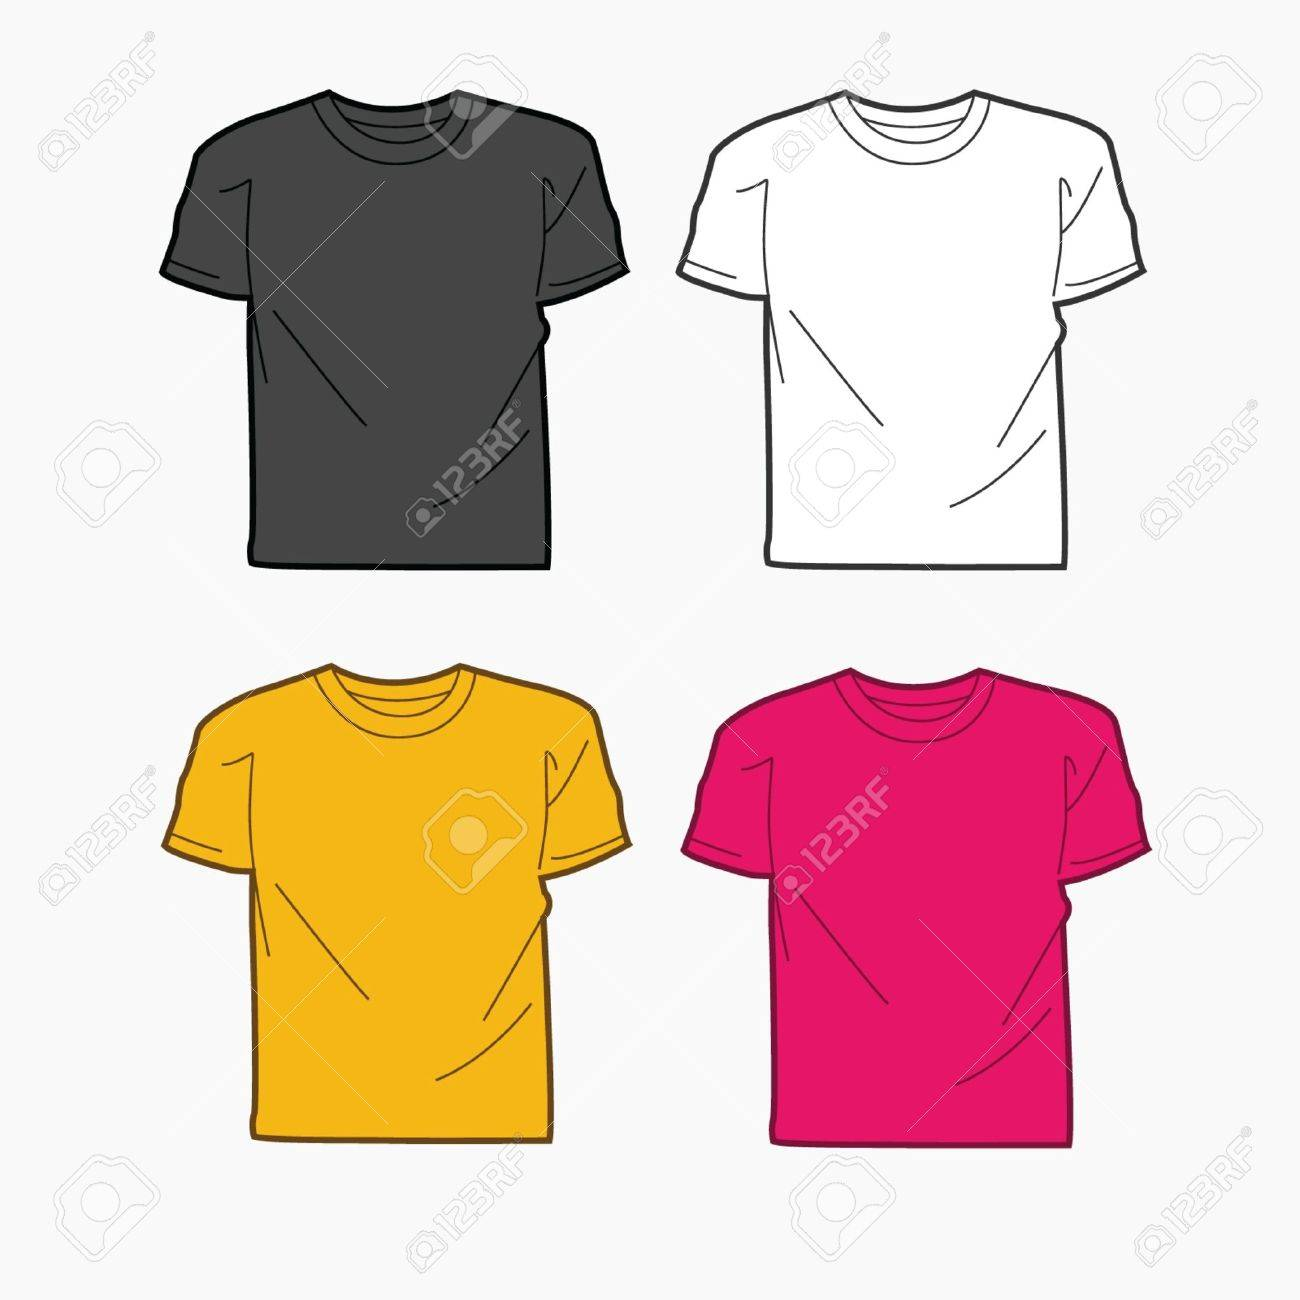 Men T-shirt Template Royalty Free Cliparts, Vectors, And Stock ...